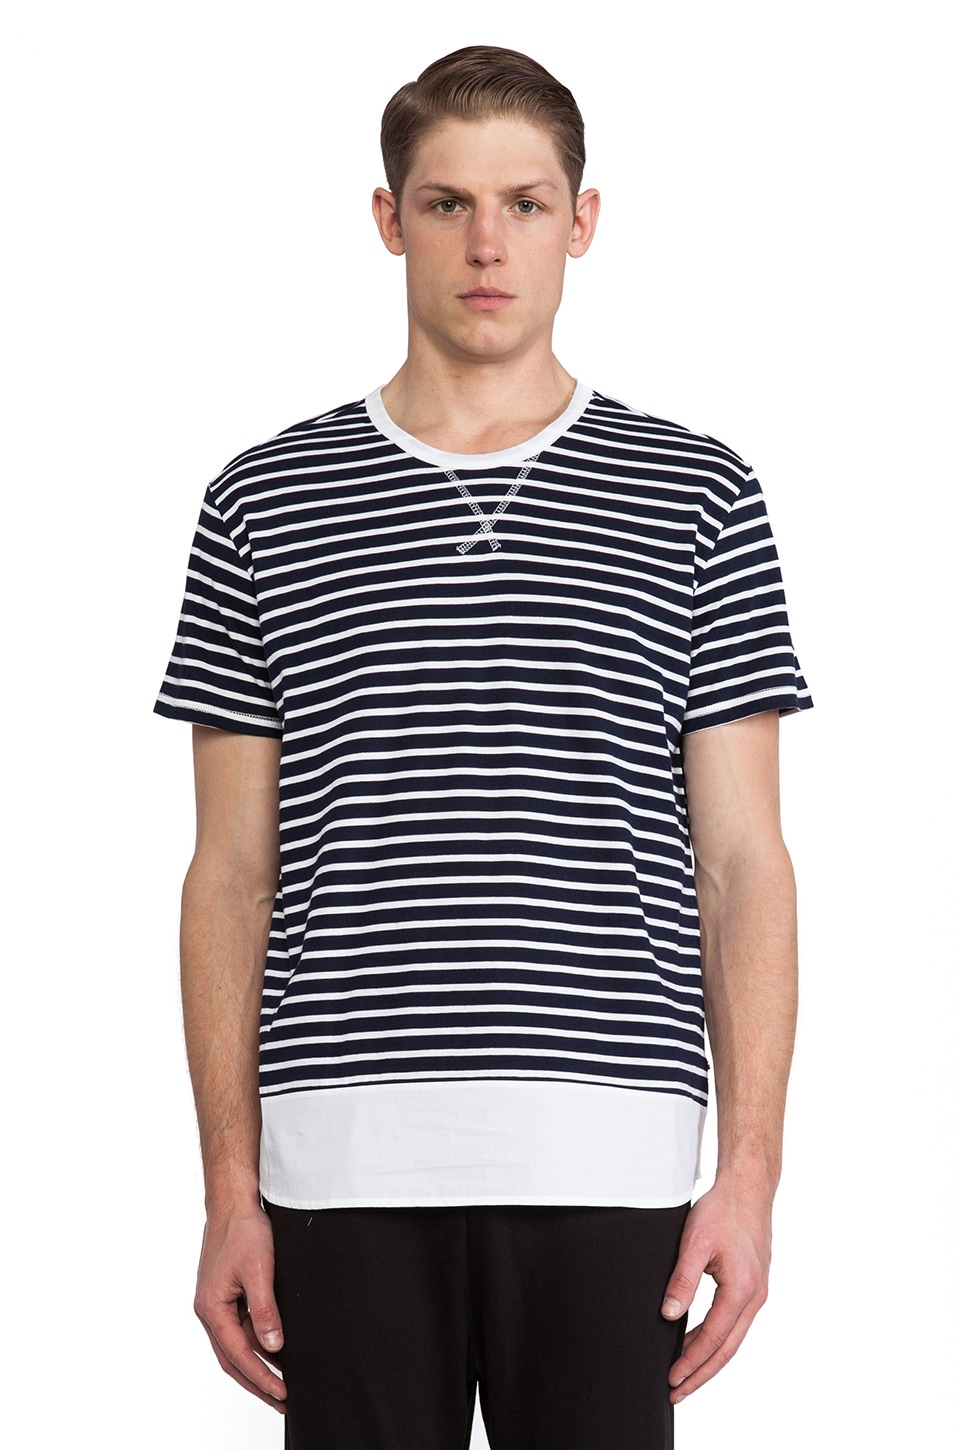 Kai-aakmann Stripe Tee in Navy